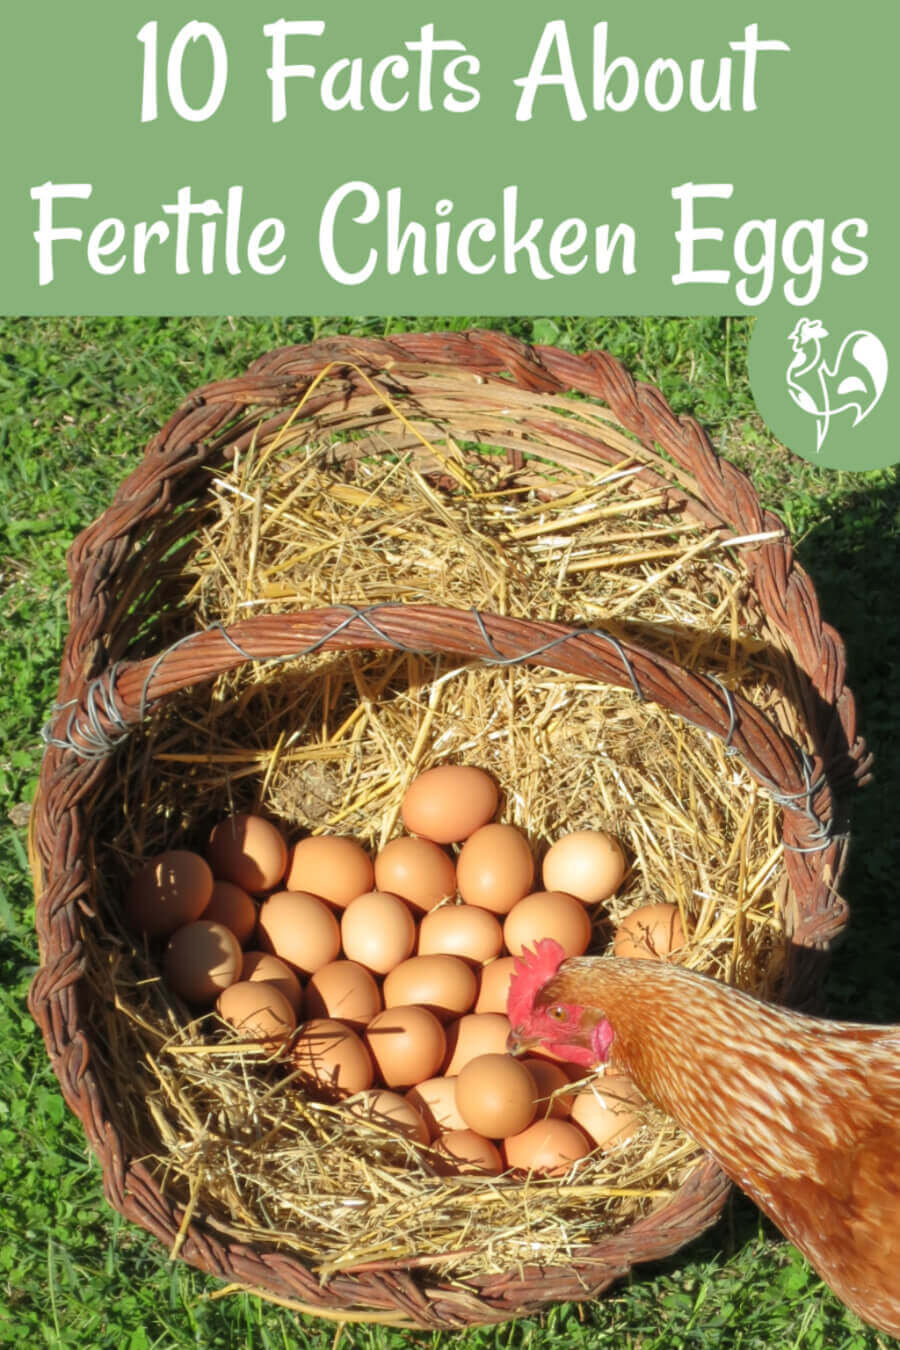 10 facts about fertile chicken eggs which beat the myths, including are supermarket eggs fertile? #backyardchickens #hatching #hatchingchicks #babychicks #incubatingchickeneggs #fertileeggs